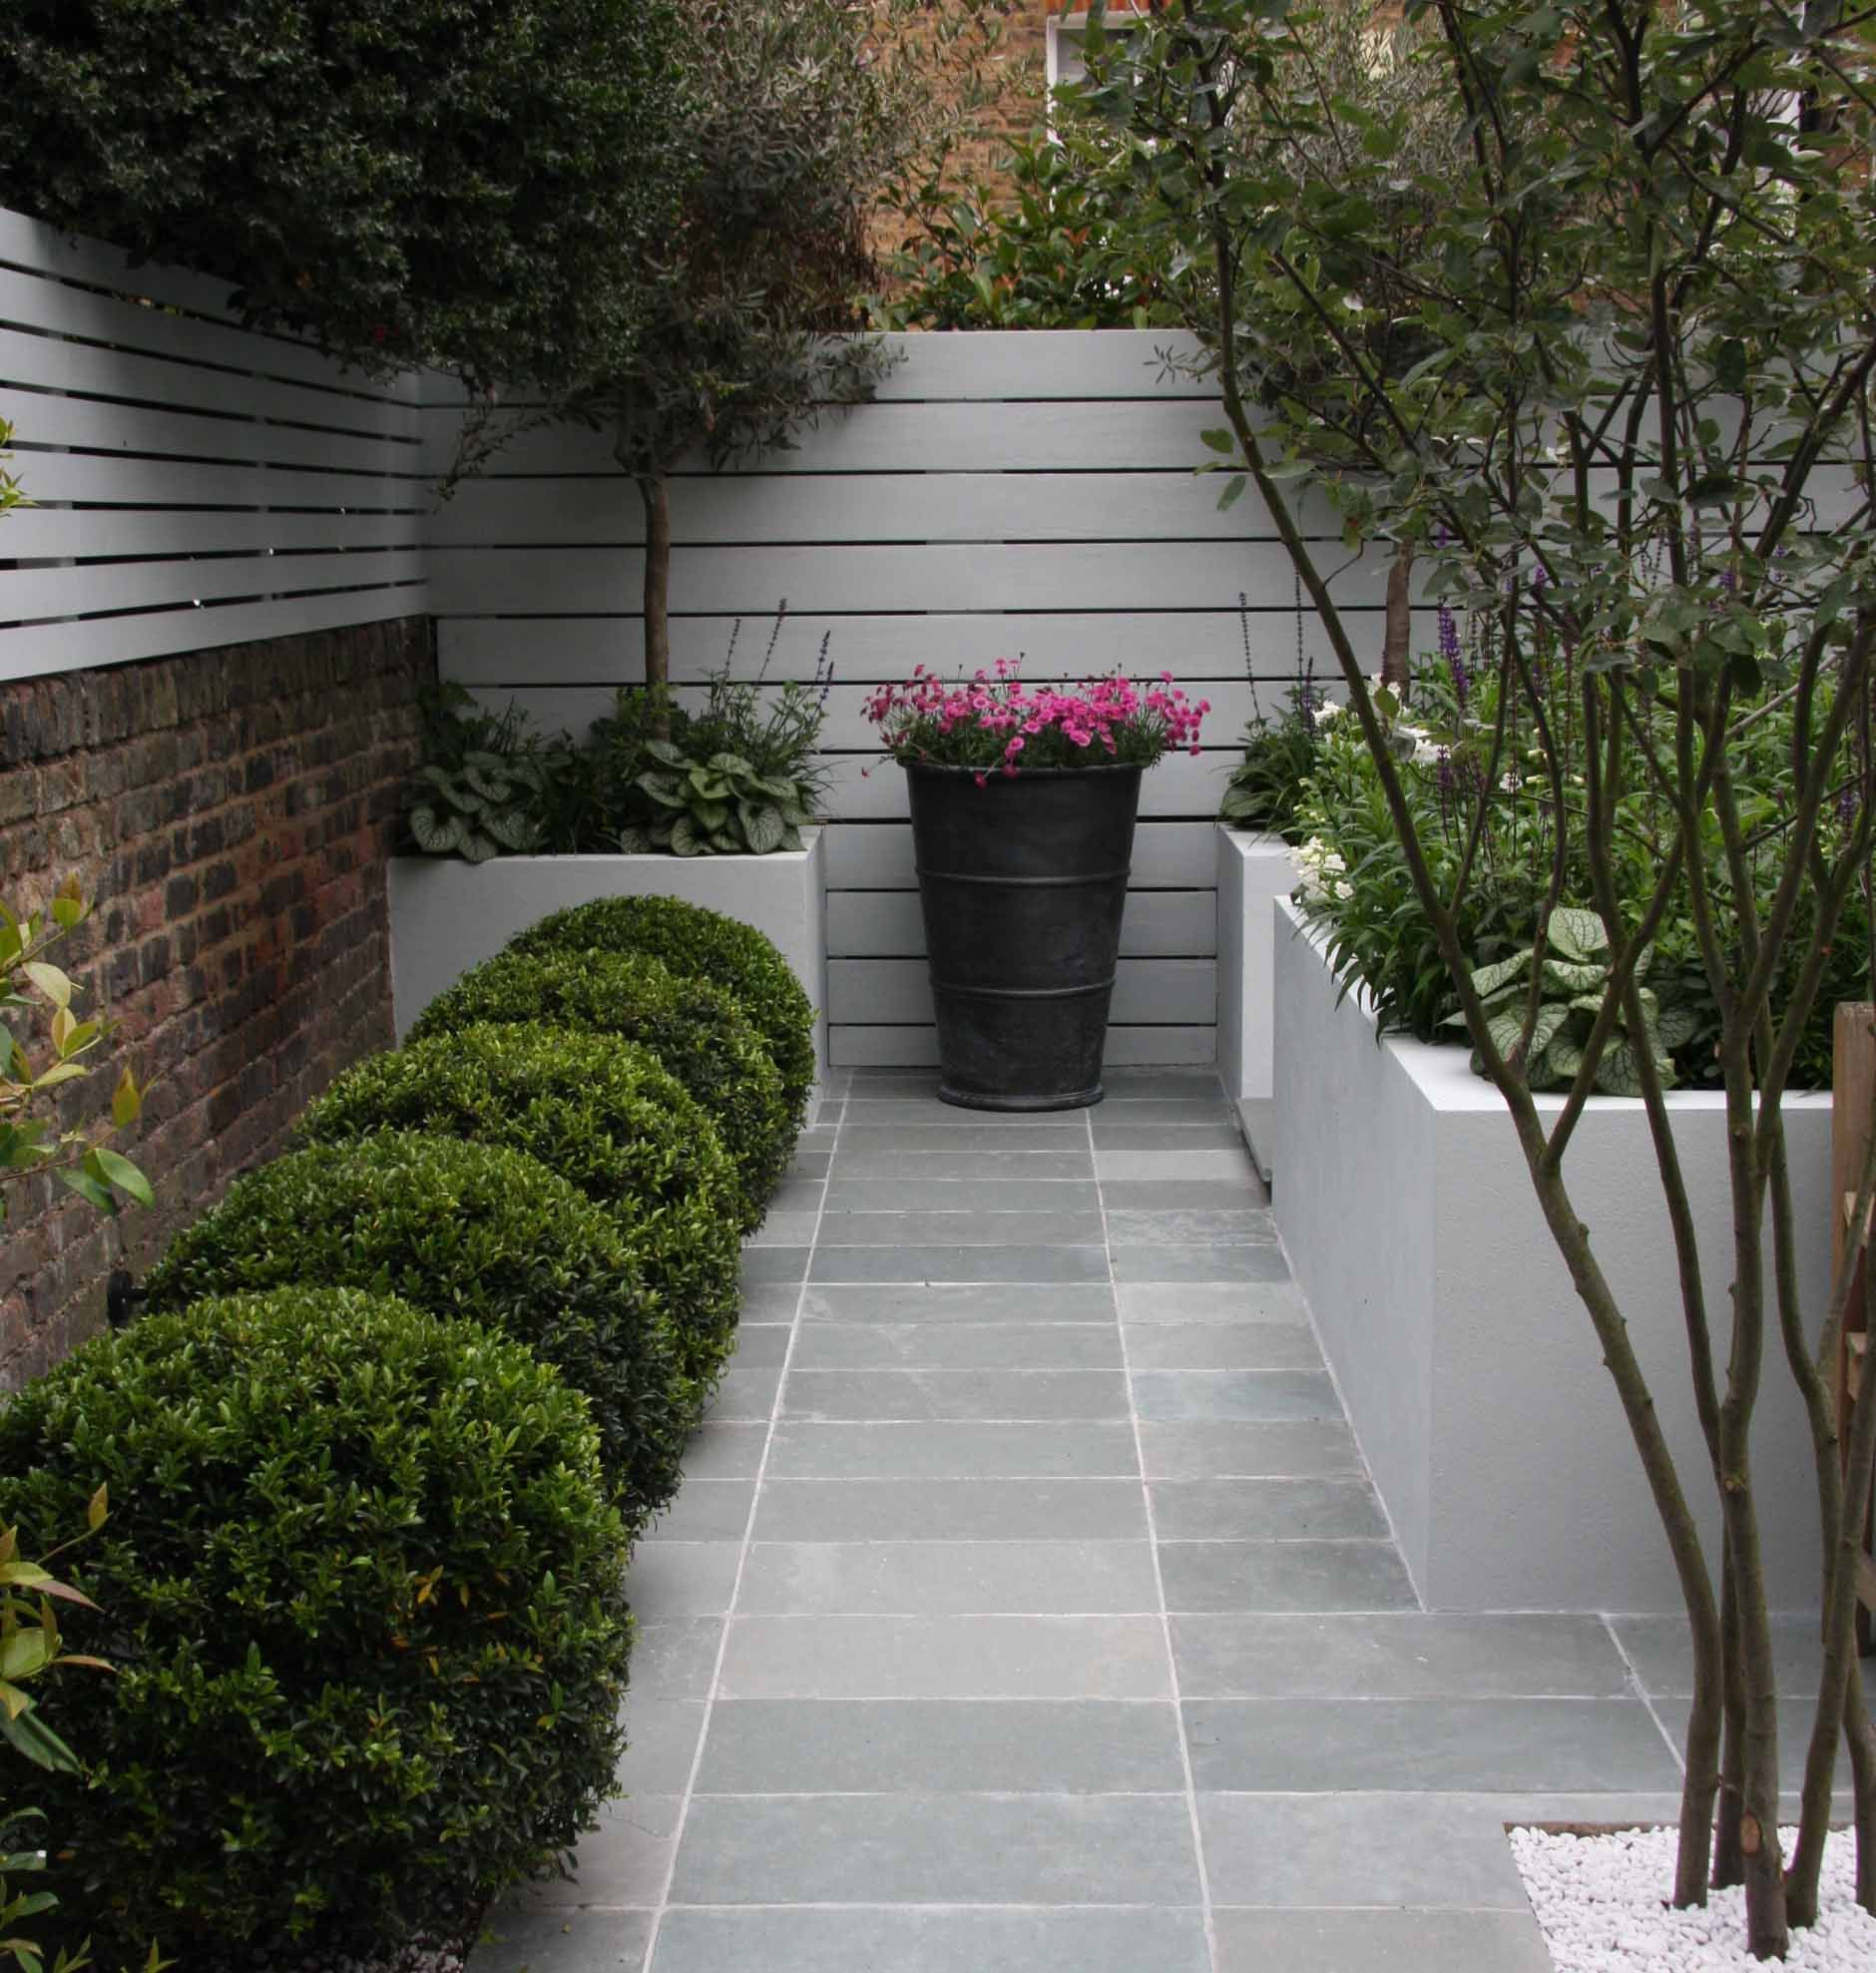 blue grey limestone paving for the exterior space picks up on